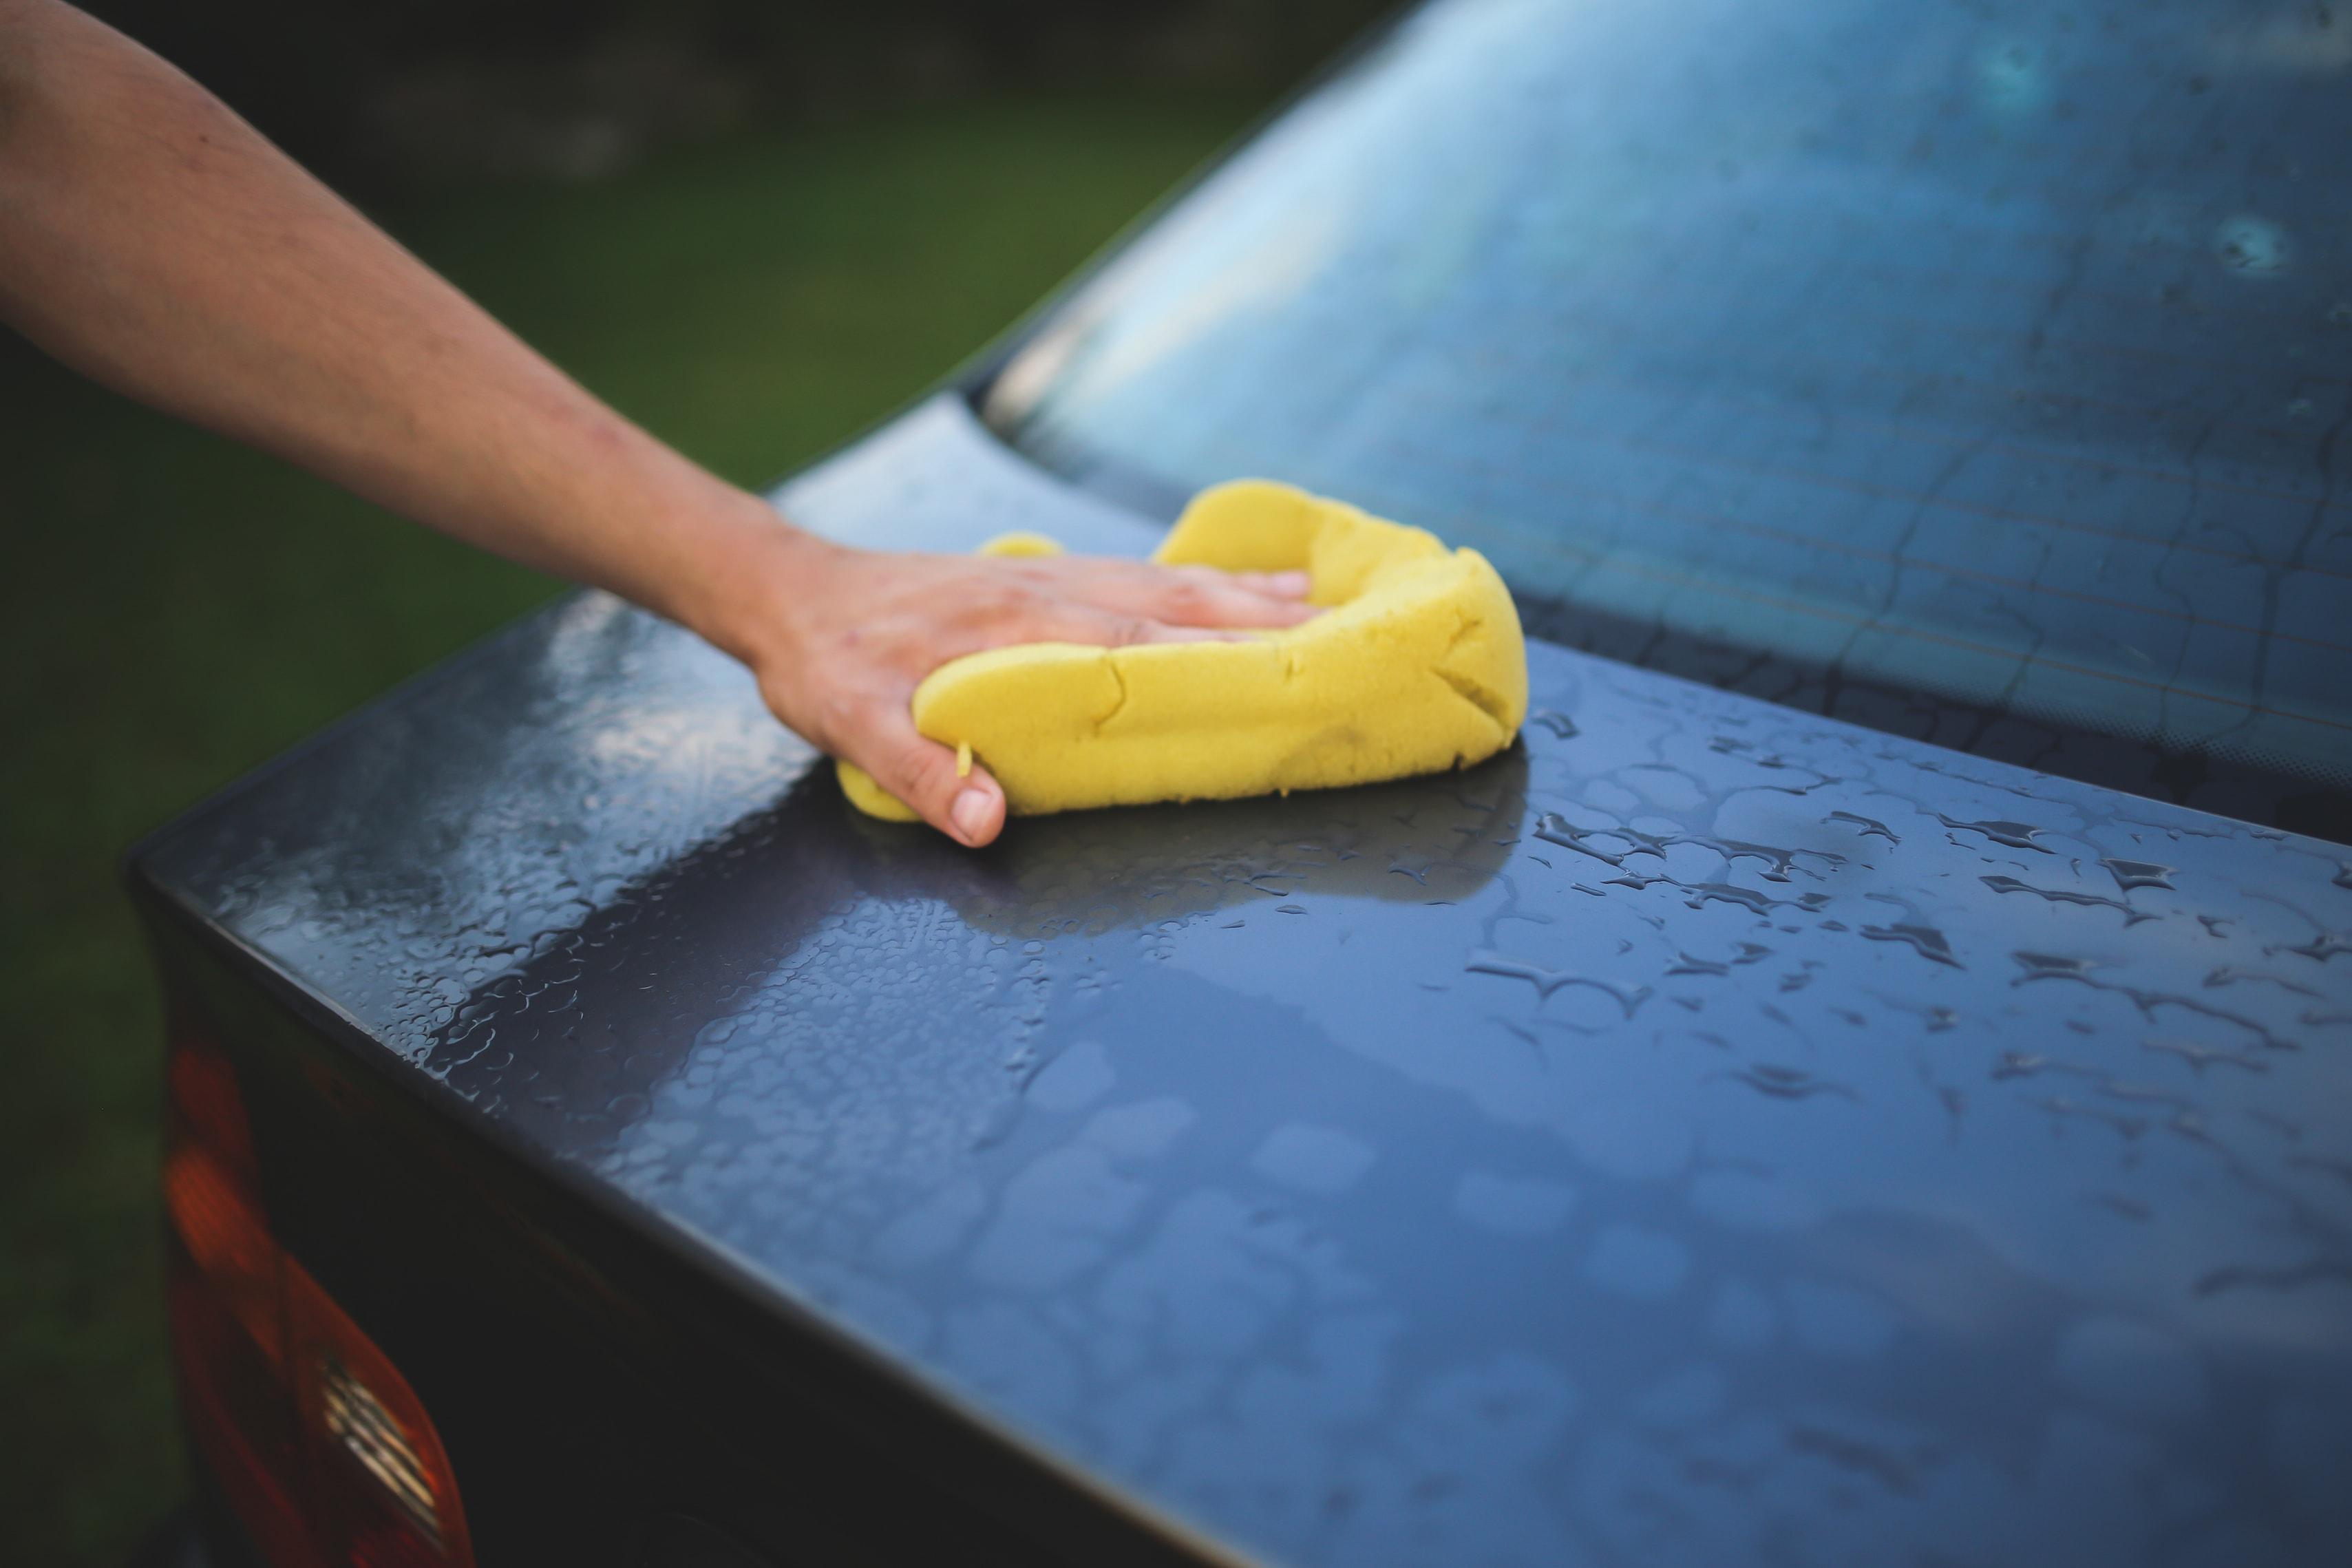 Handwashing a car outside